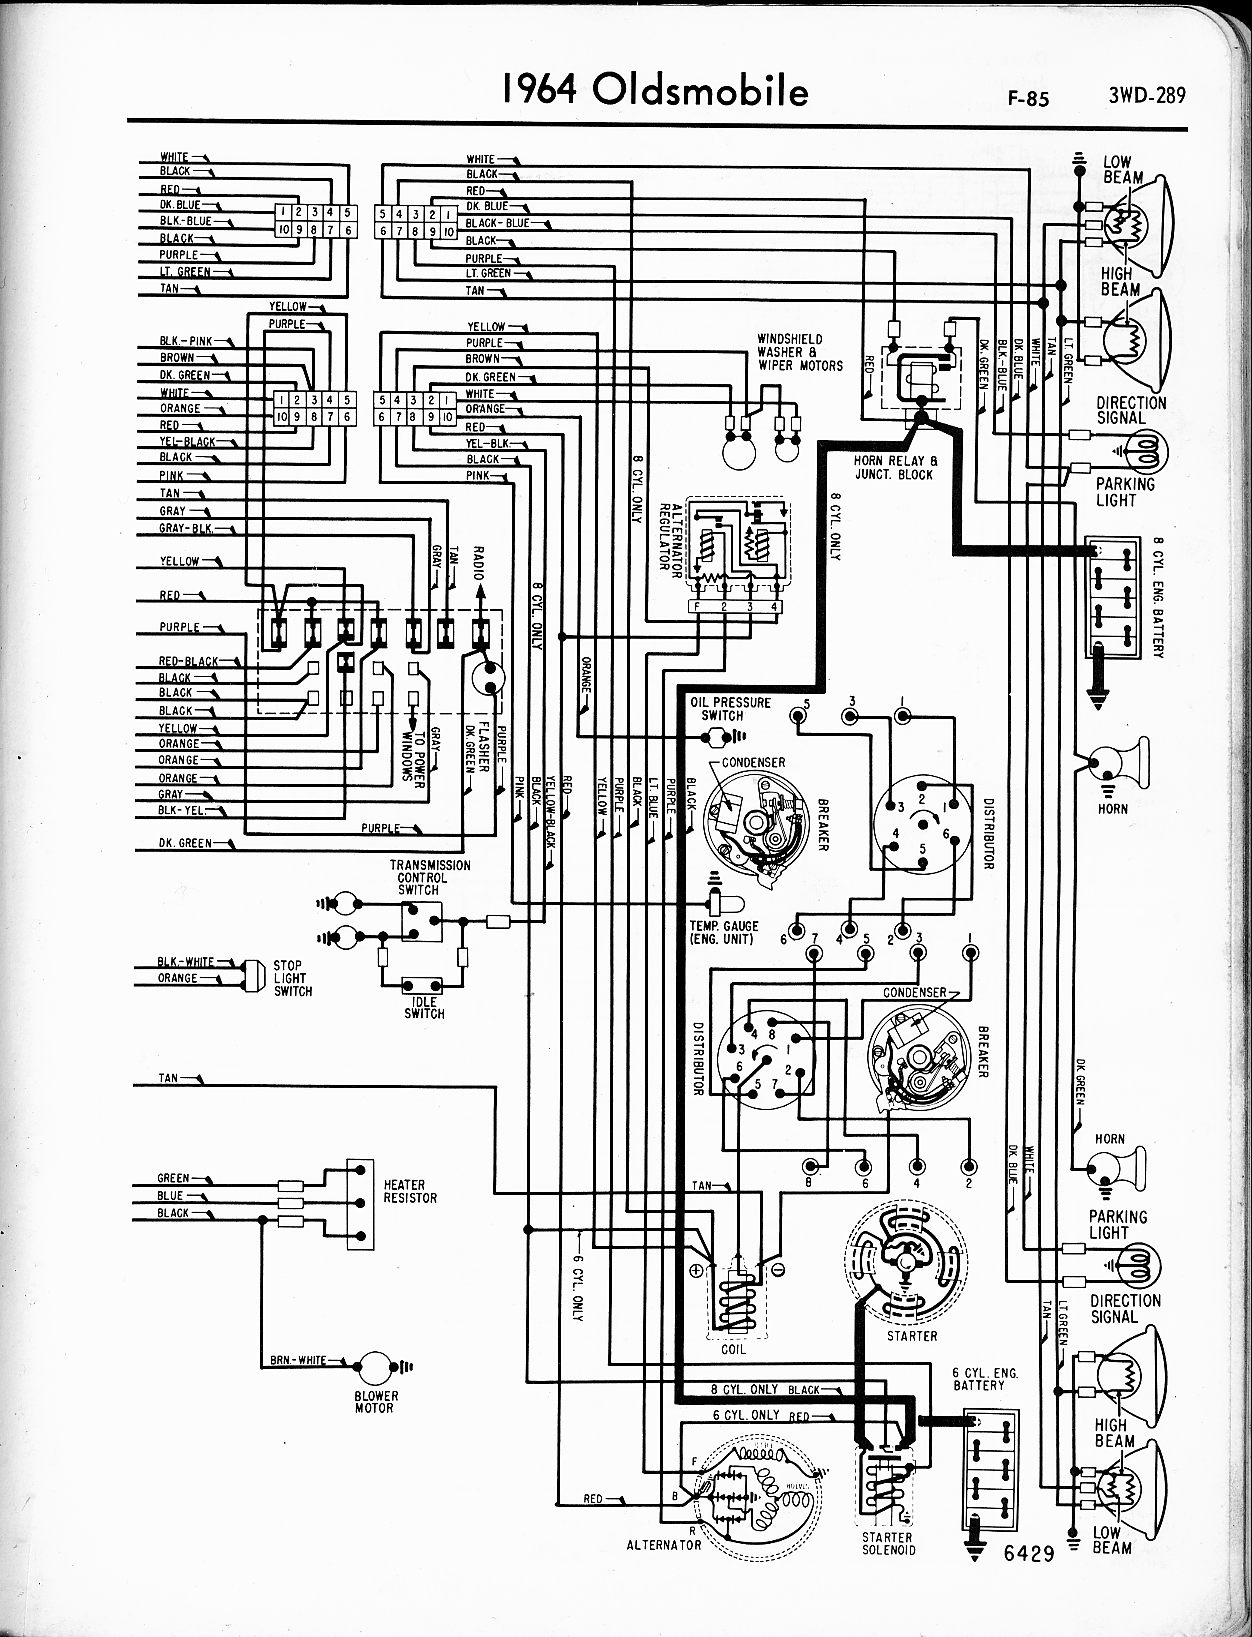 oldsmobile 88 wiring diagram oldsmobile wiring diagrams - the old car manual project oldsmobile 88 wiring diagram #1